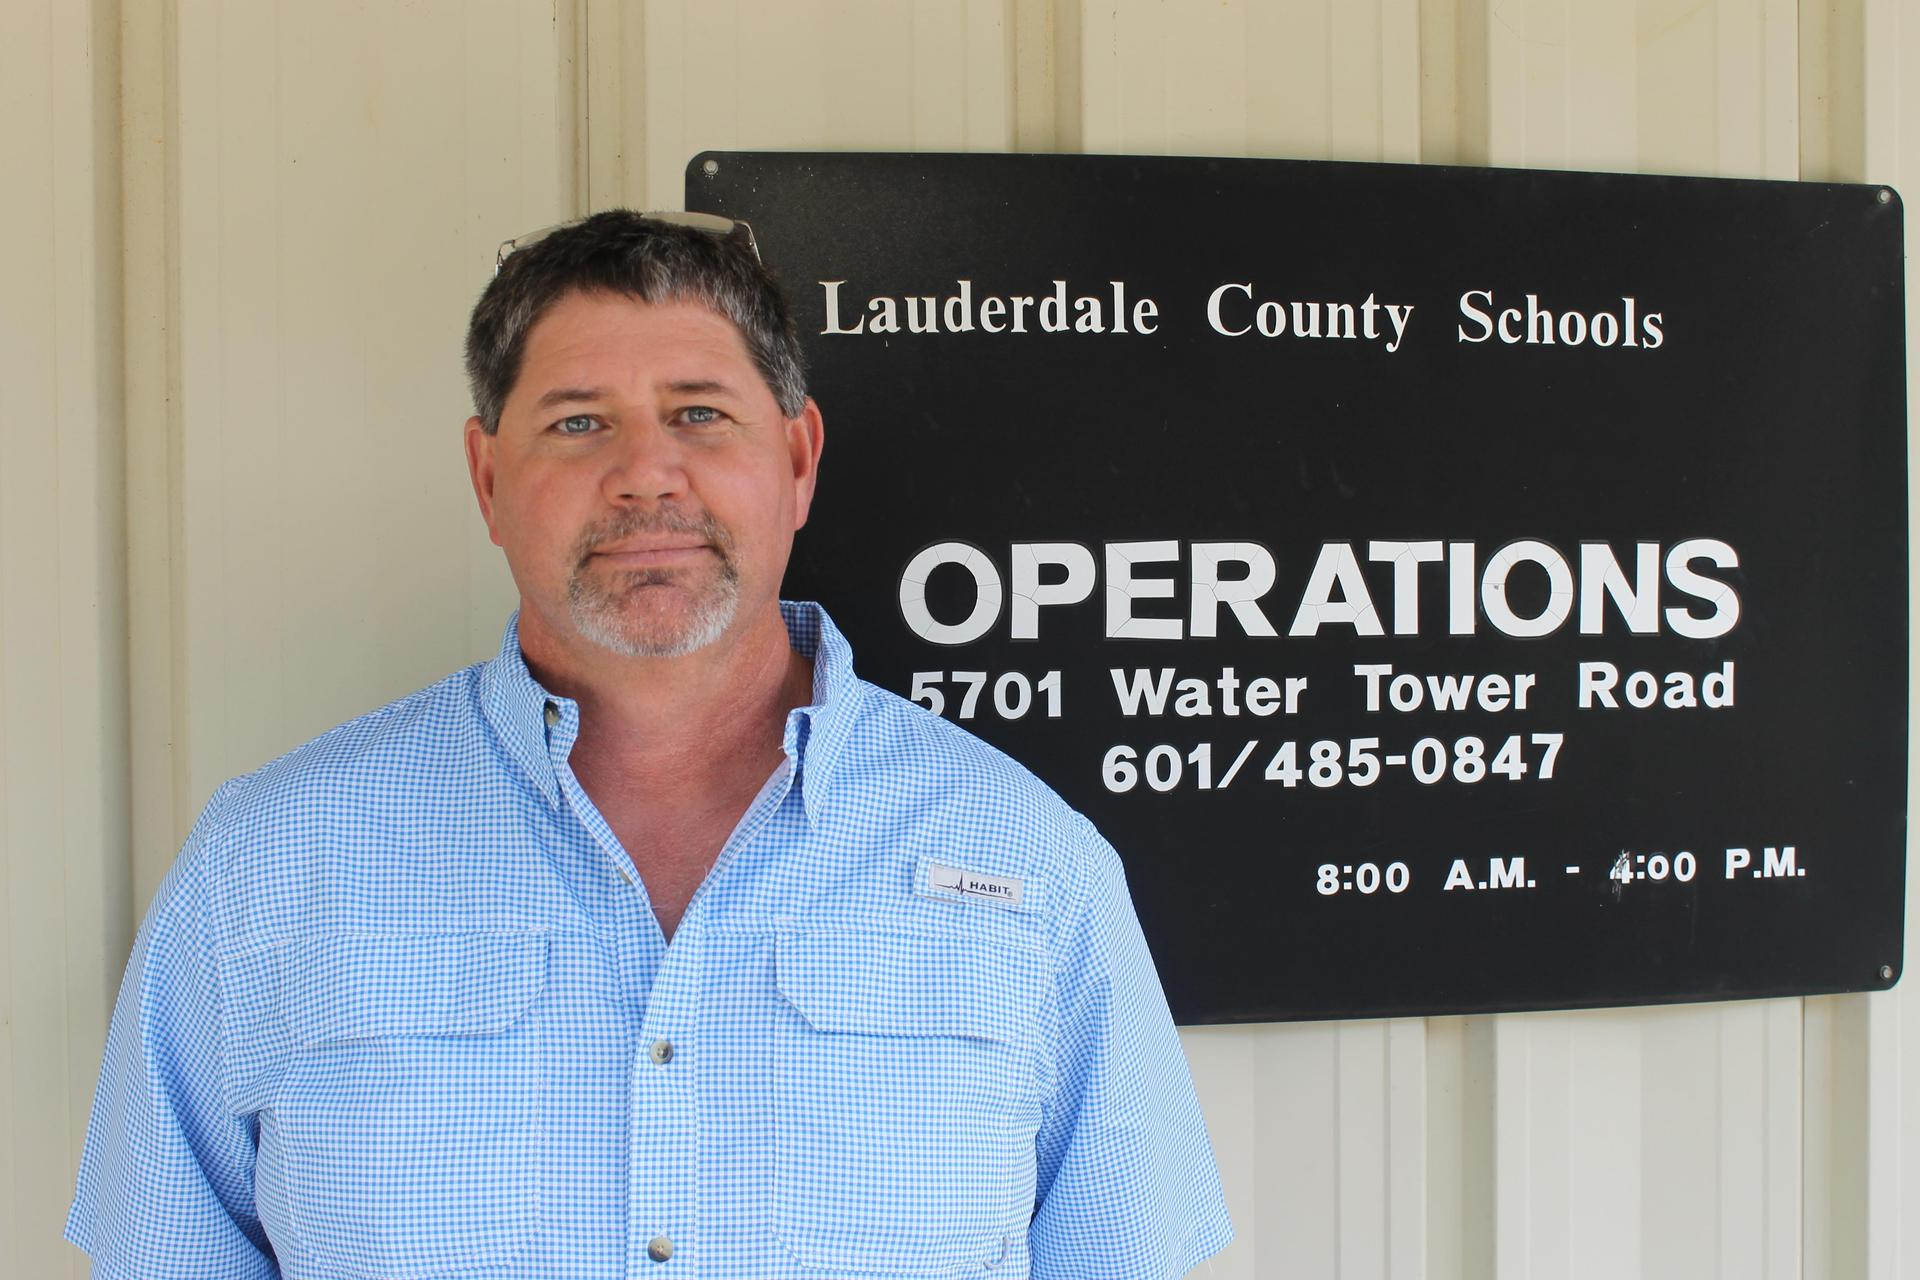 Steve Marlow LCSD Operations Supervisor